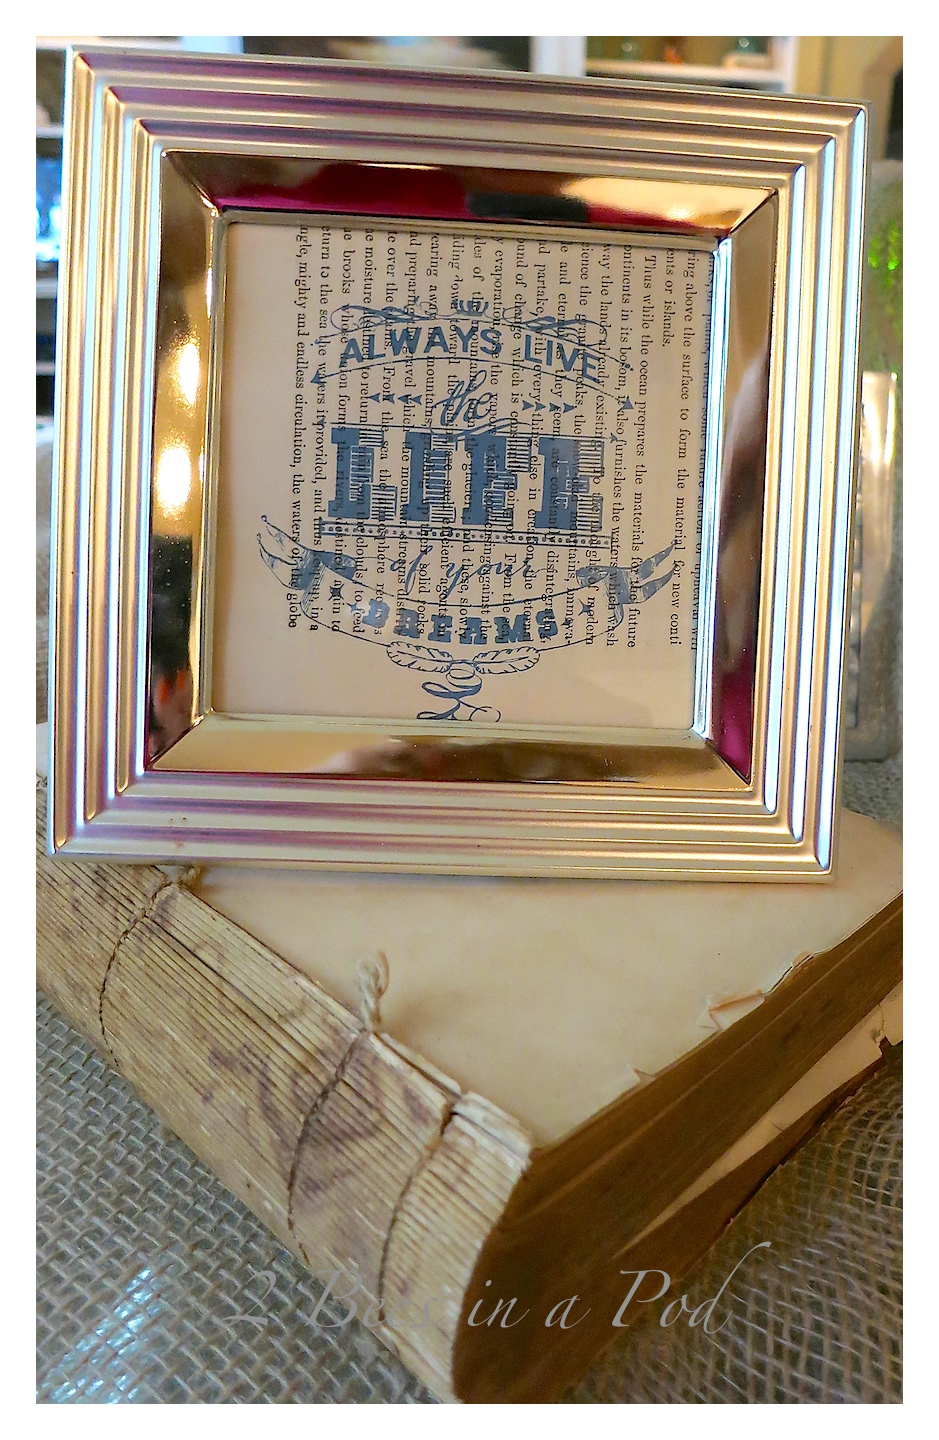 2 Minute Quick-Print Art. By using an app it is super easy to create printed quotes to be displayed in picture frames.